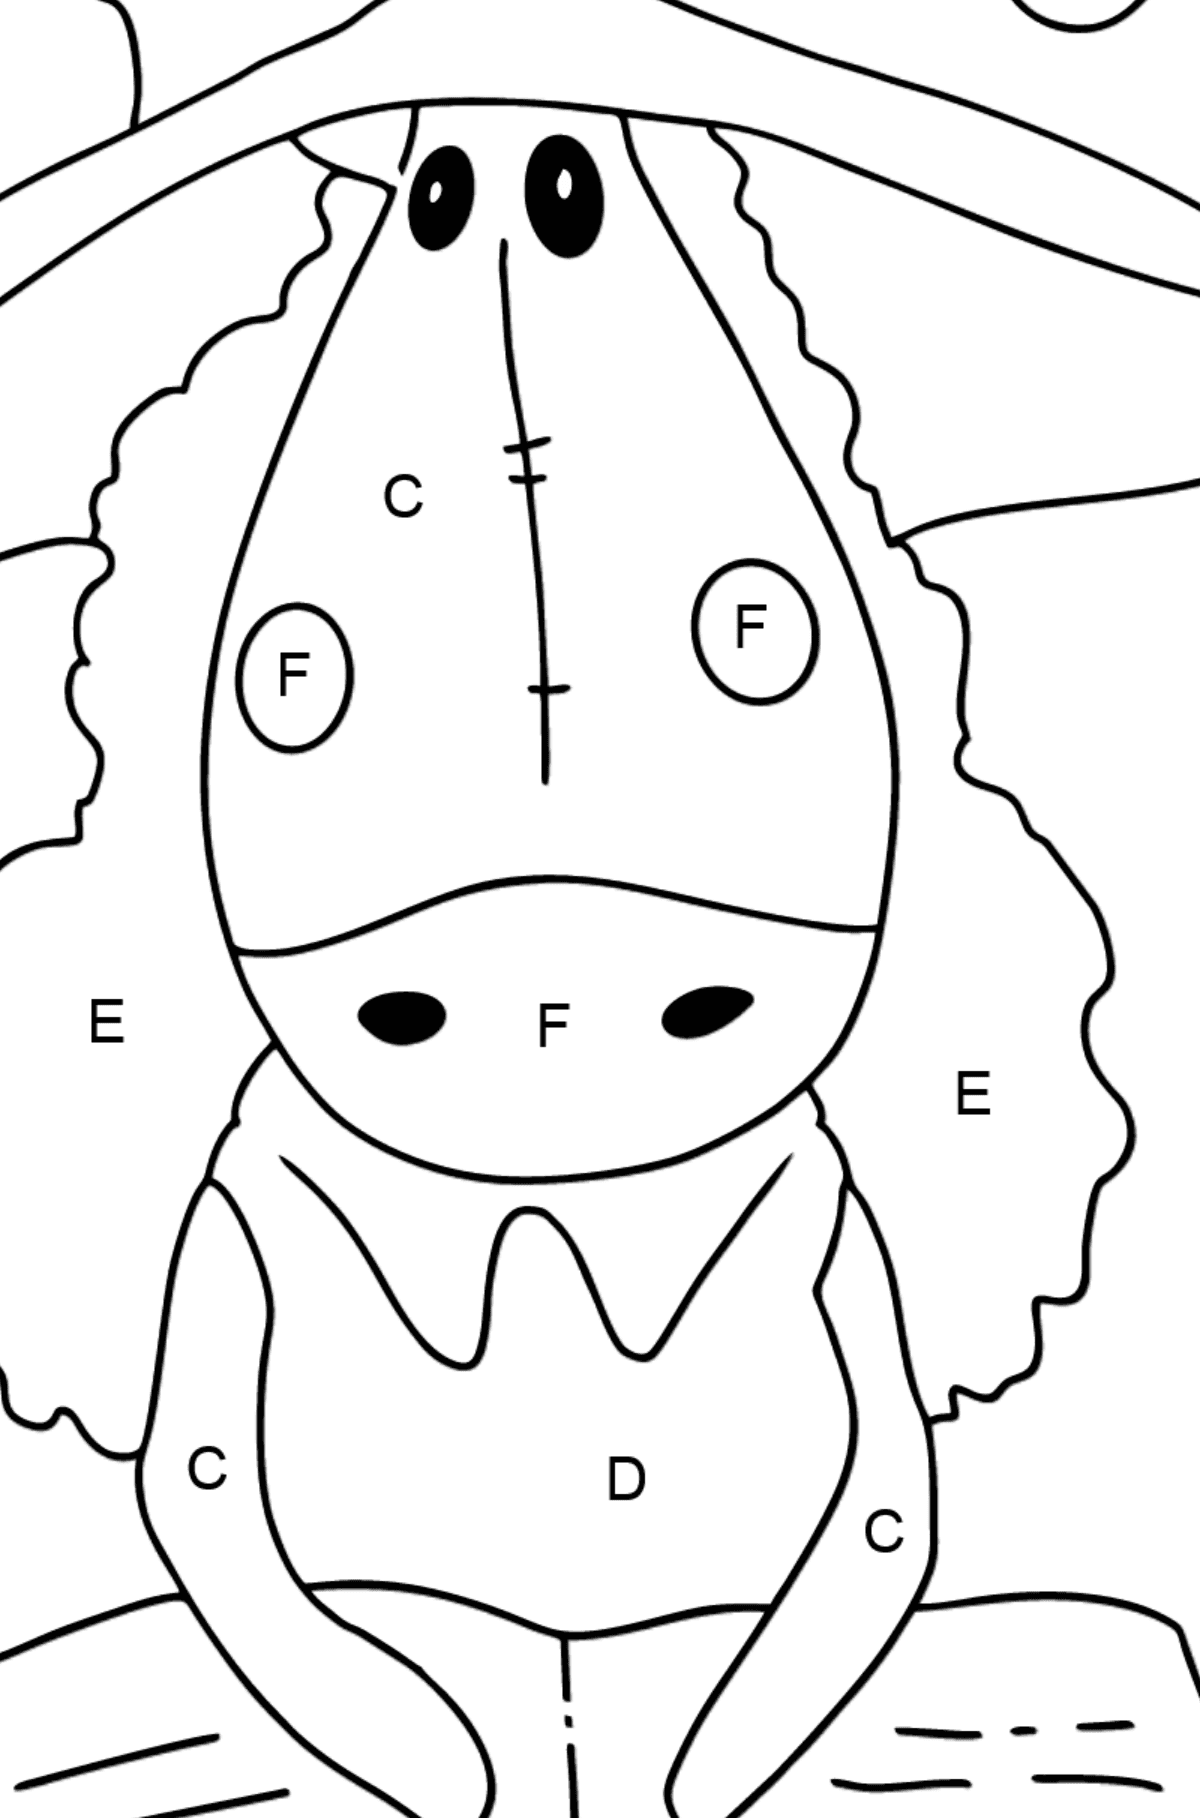 Simple coloring page a horse with book - Coloring by Letters for Kids